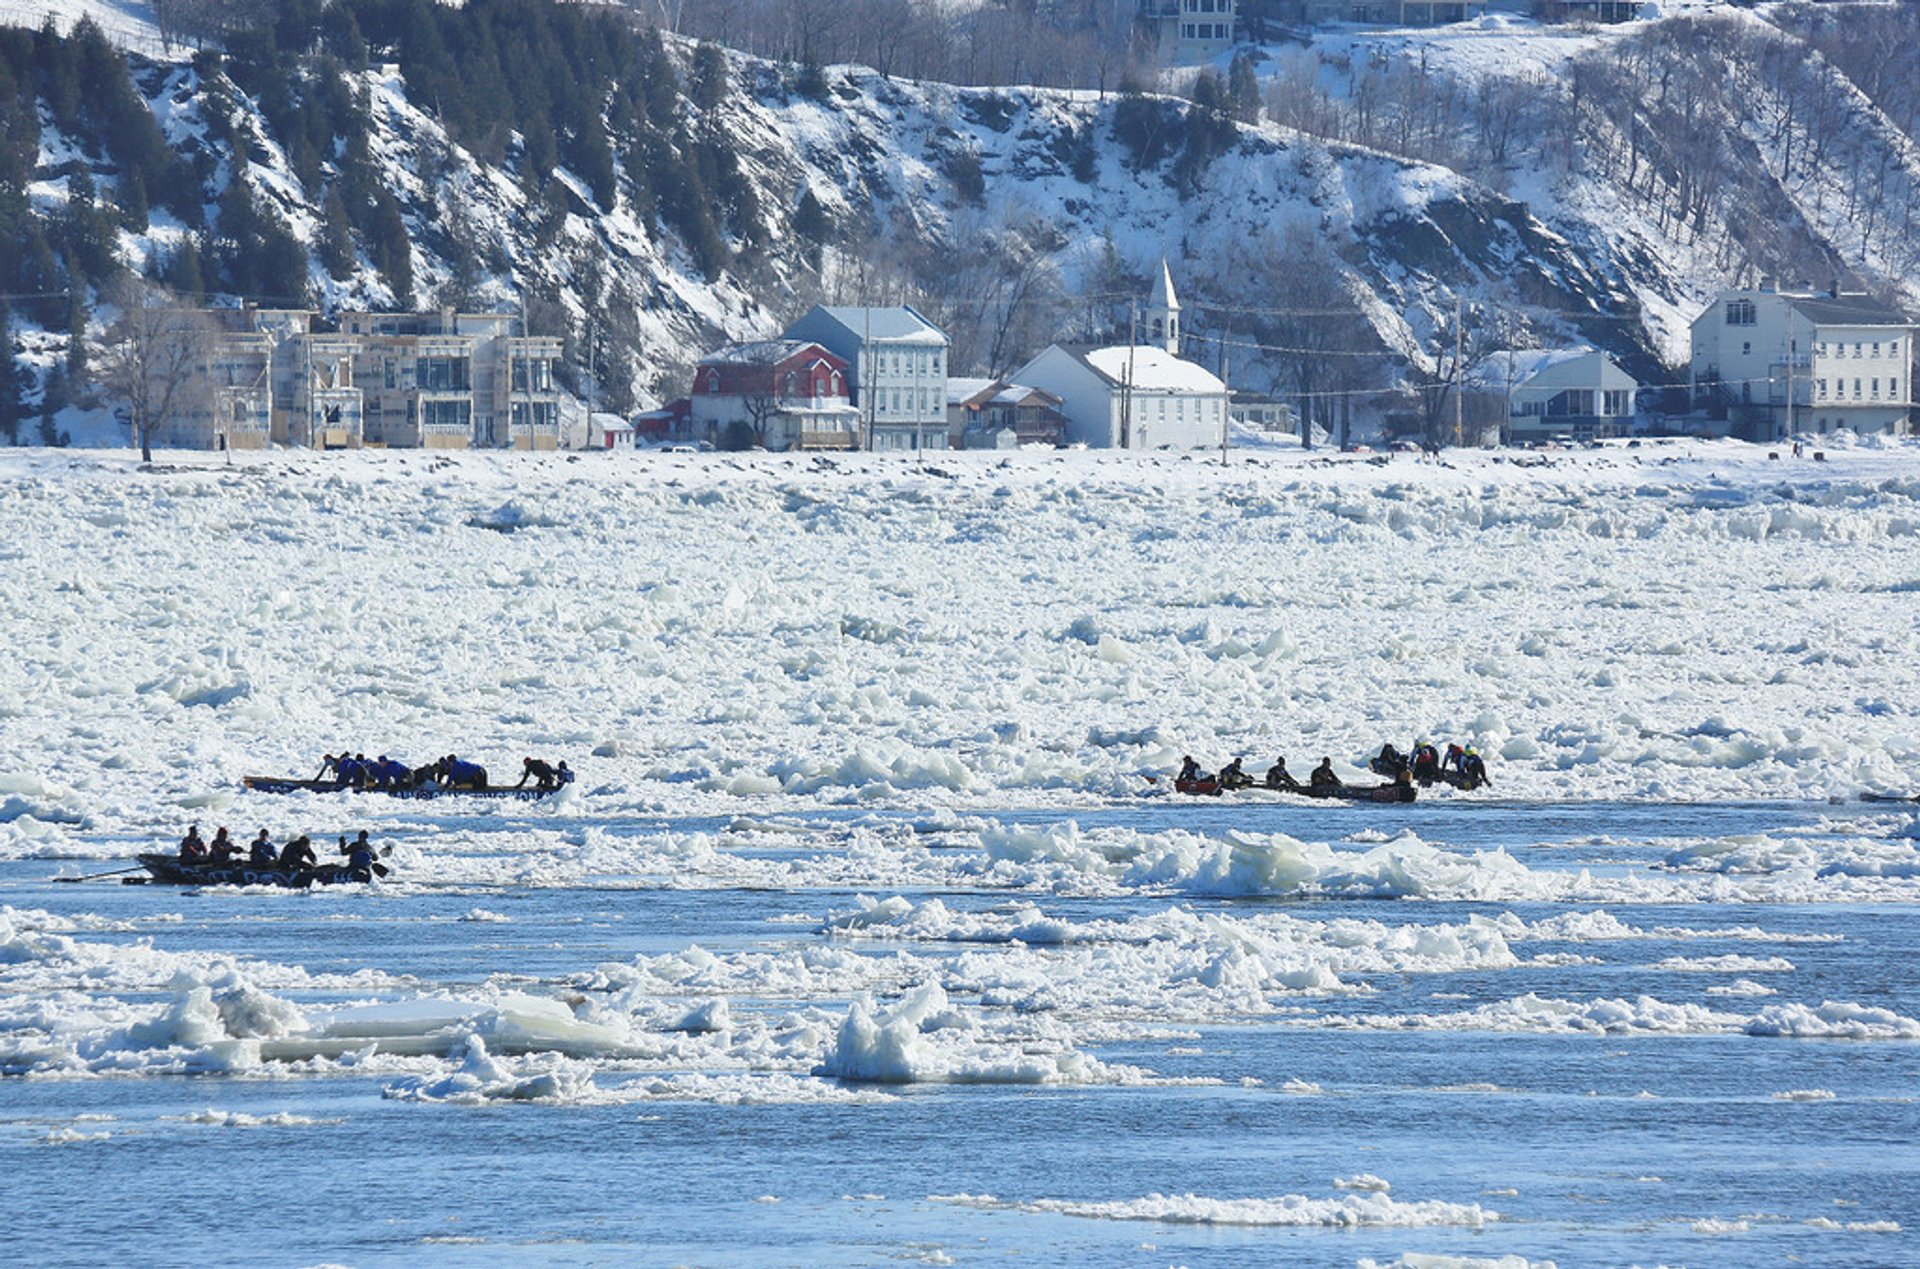 Quebec City Carnaval Canoe Race